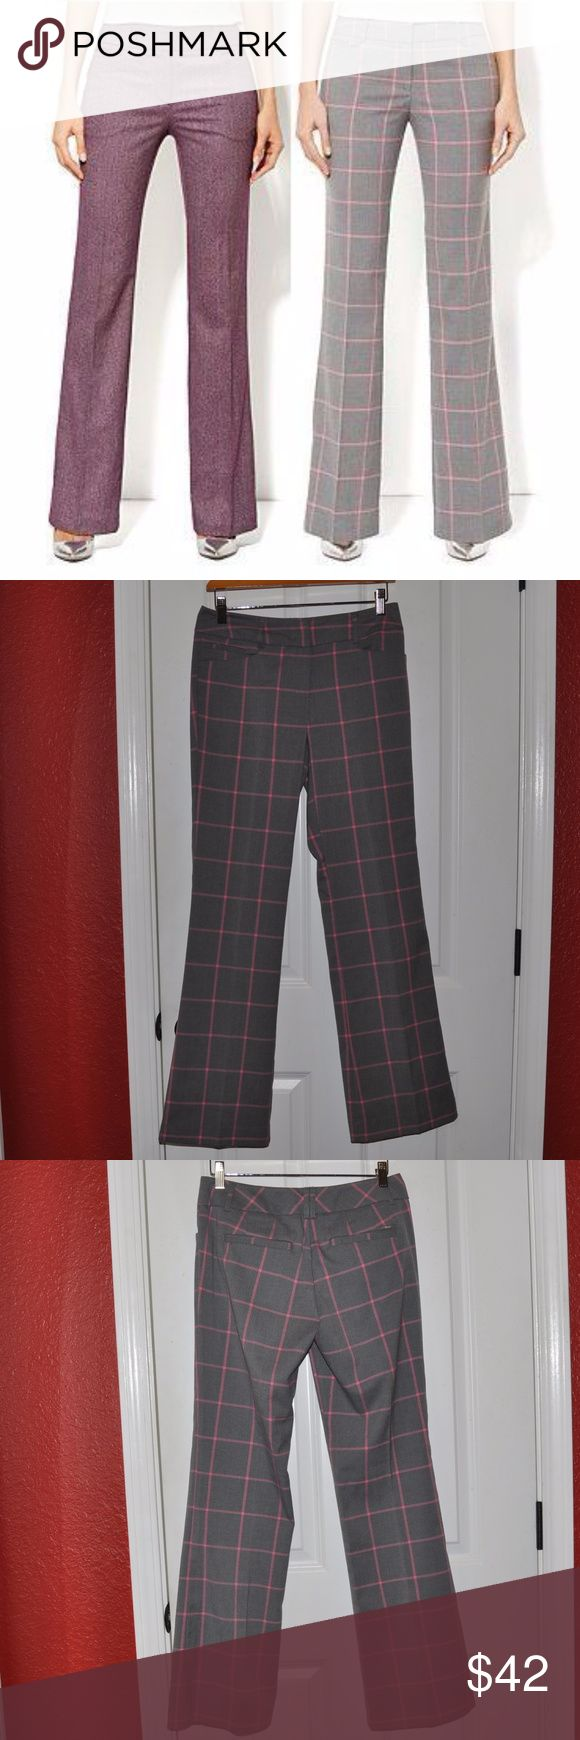 BUNDLE of 2 New York & Company 7th Avenue Pants A1 New York & Company 7th Avenue Pants Bundle  size 2 waist 29 hips 36 rise 8 1/2 inseam 31 1/2  windowpane plaid (gray/pink) herringbone (purple)  modern fit boot cut Sits just below waist. Slimming through hip and thigh Zip front with hook-and-bar closure Belt loops Front pockets Back welt pockets  condition: excellent @cjrose25  Trouser Dress Pants Slacks Career Suit Separate New York & Company Pants Boot Cut & Flare